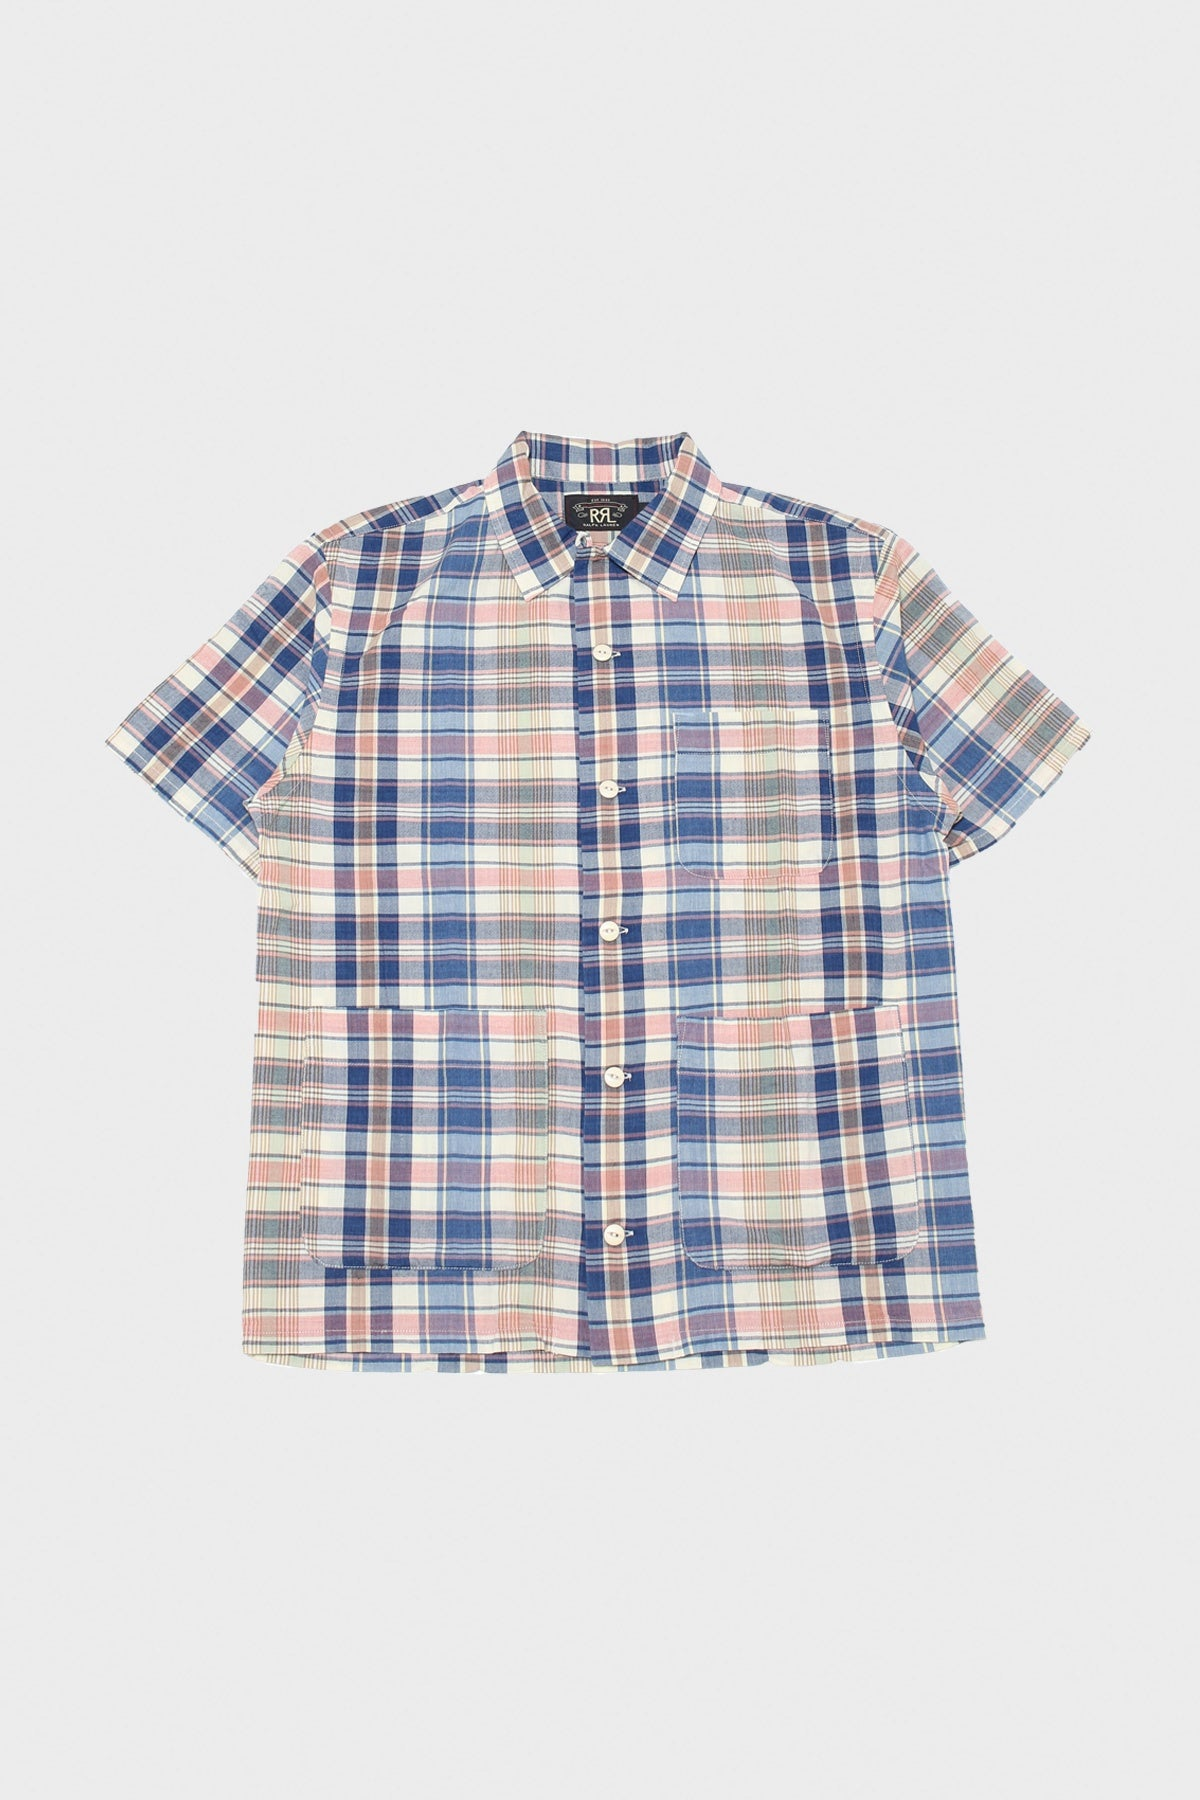 RRL - Indigo Plaid Woven Camp Shirt - Cream/Multi - Canoe Club